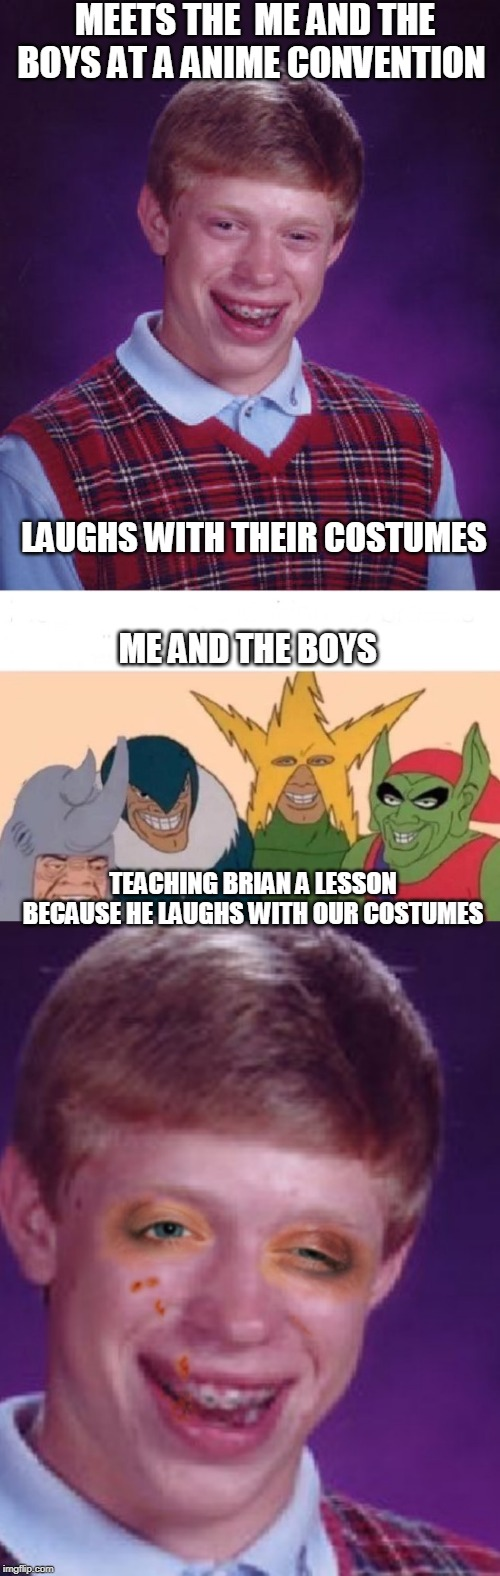 Dont mess with me and the boys | MEETS THE  ME AND THE BOYS AT A ANIME CONVENTION LAUGHS WITH THEIR COSTUMES ME AND THE BOYS TEACHING BRIAN A LESSON BECAUSE HE LAUGHS WITH O | image tagged in memes,bad luck brian,me and the boys,beating,loser,cosplay | made w/ Imgflip meme maker